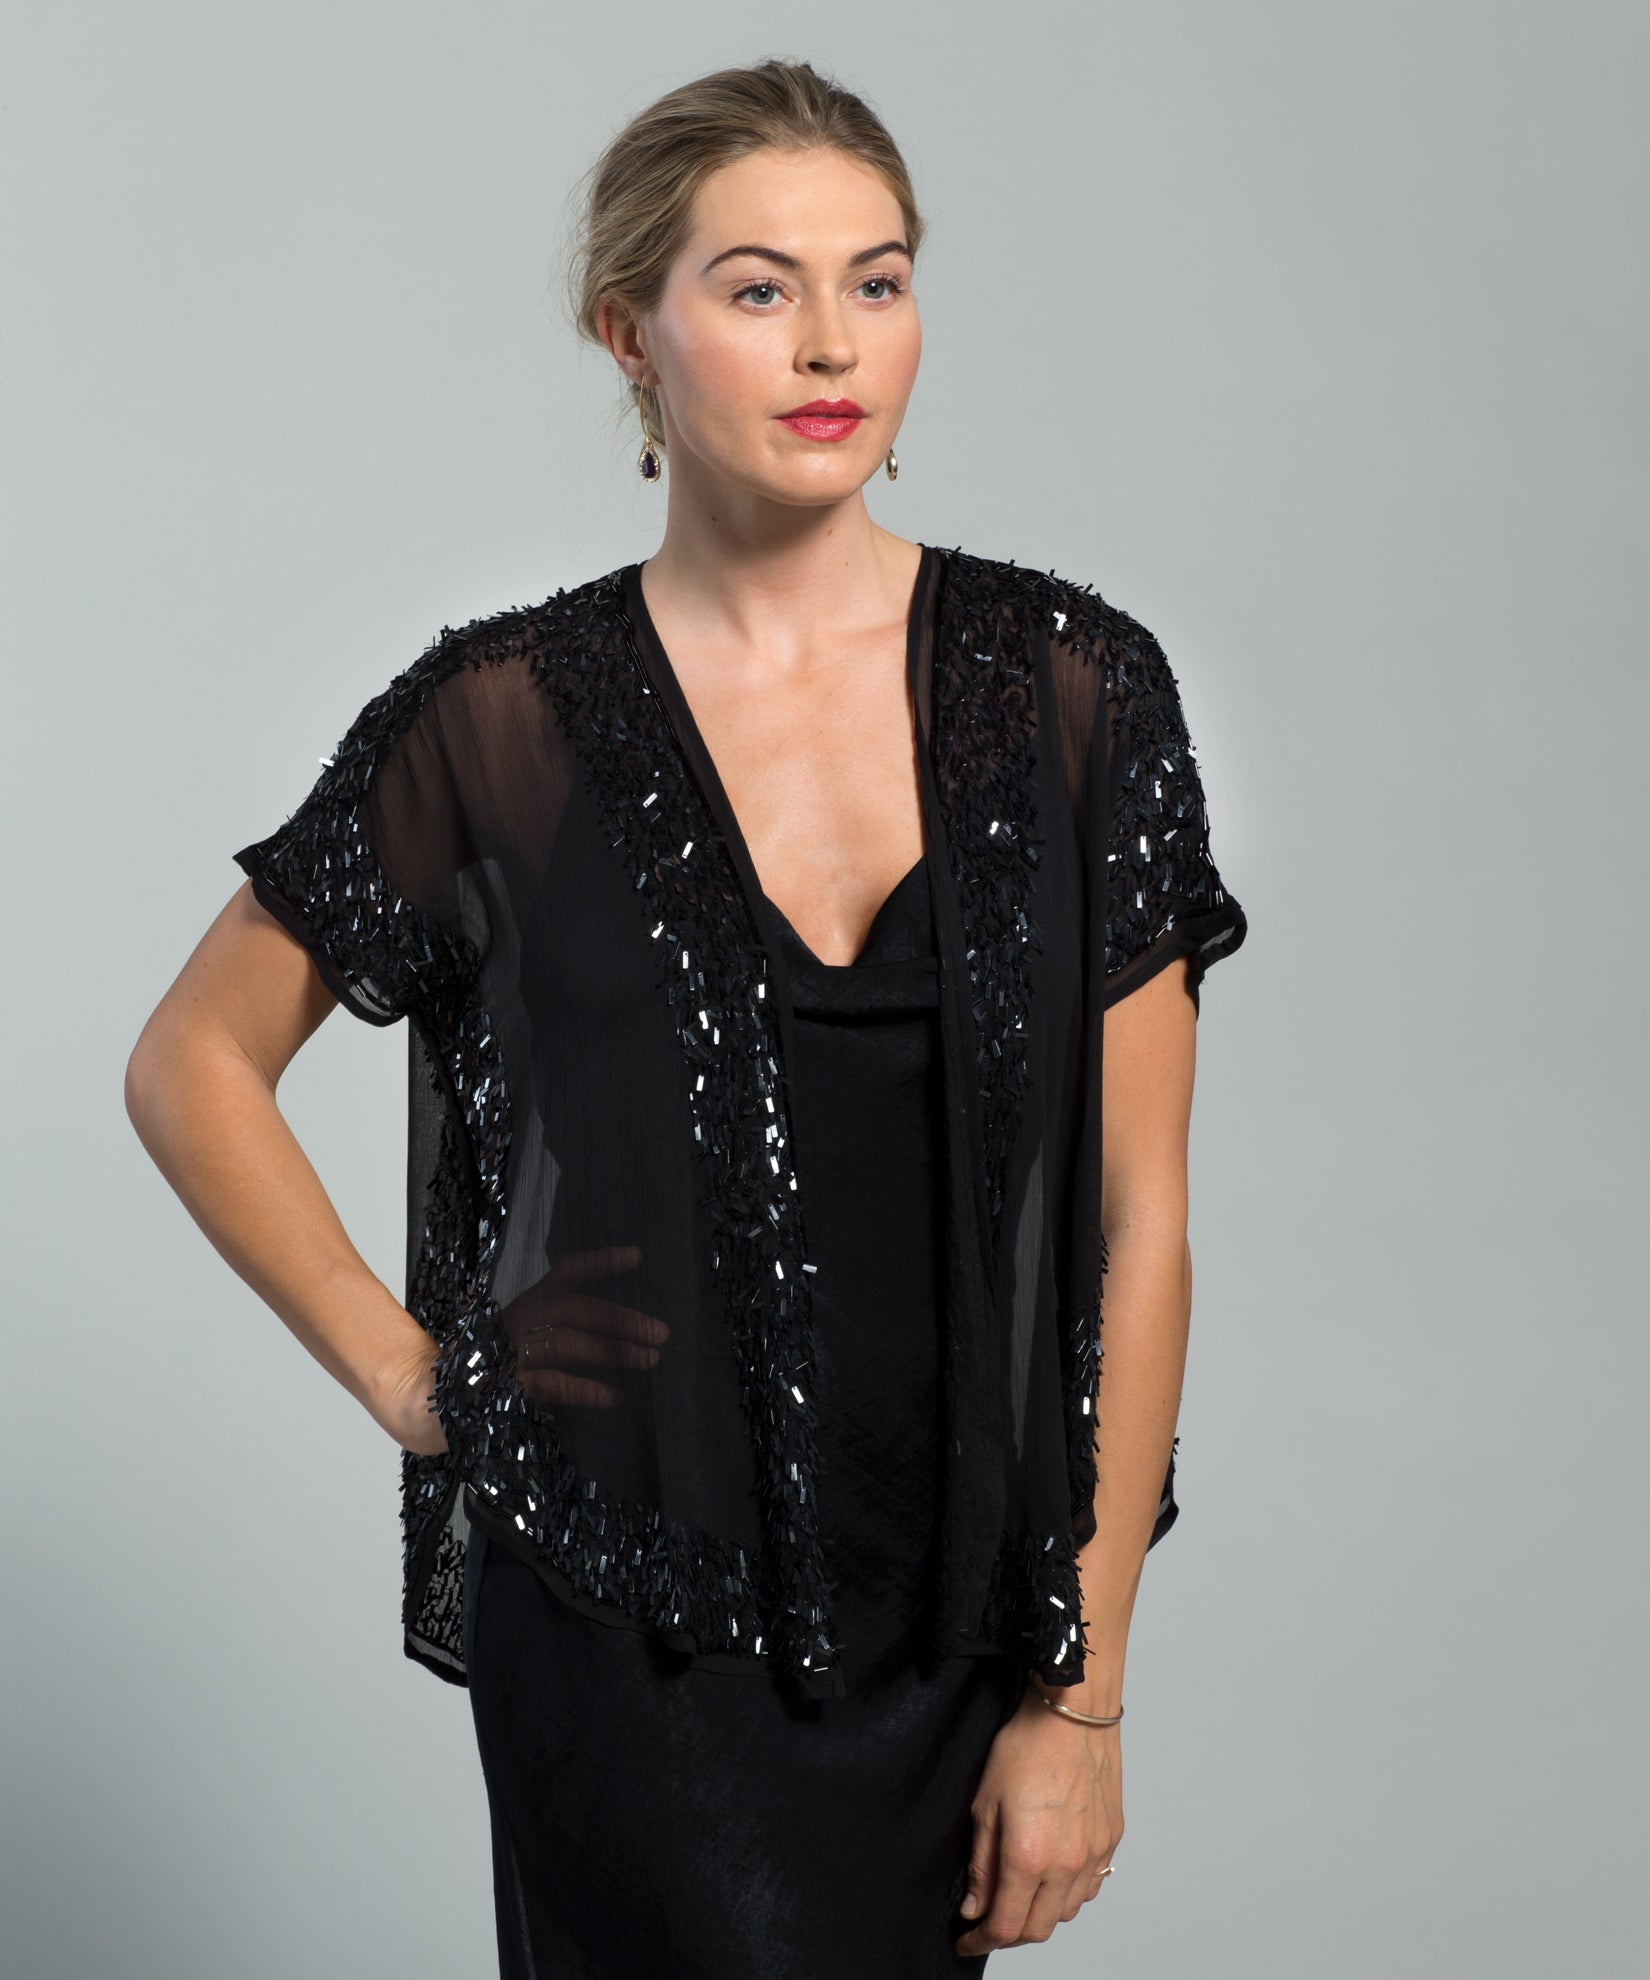 Black - Sparkly Sheer Shrug